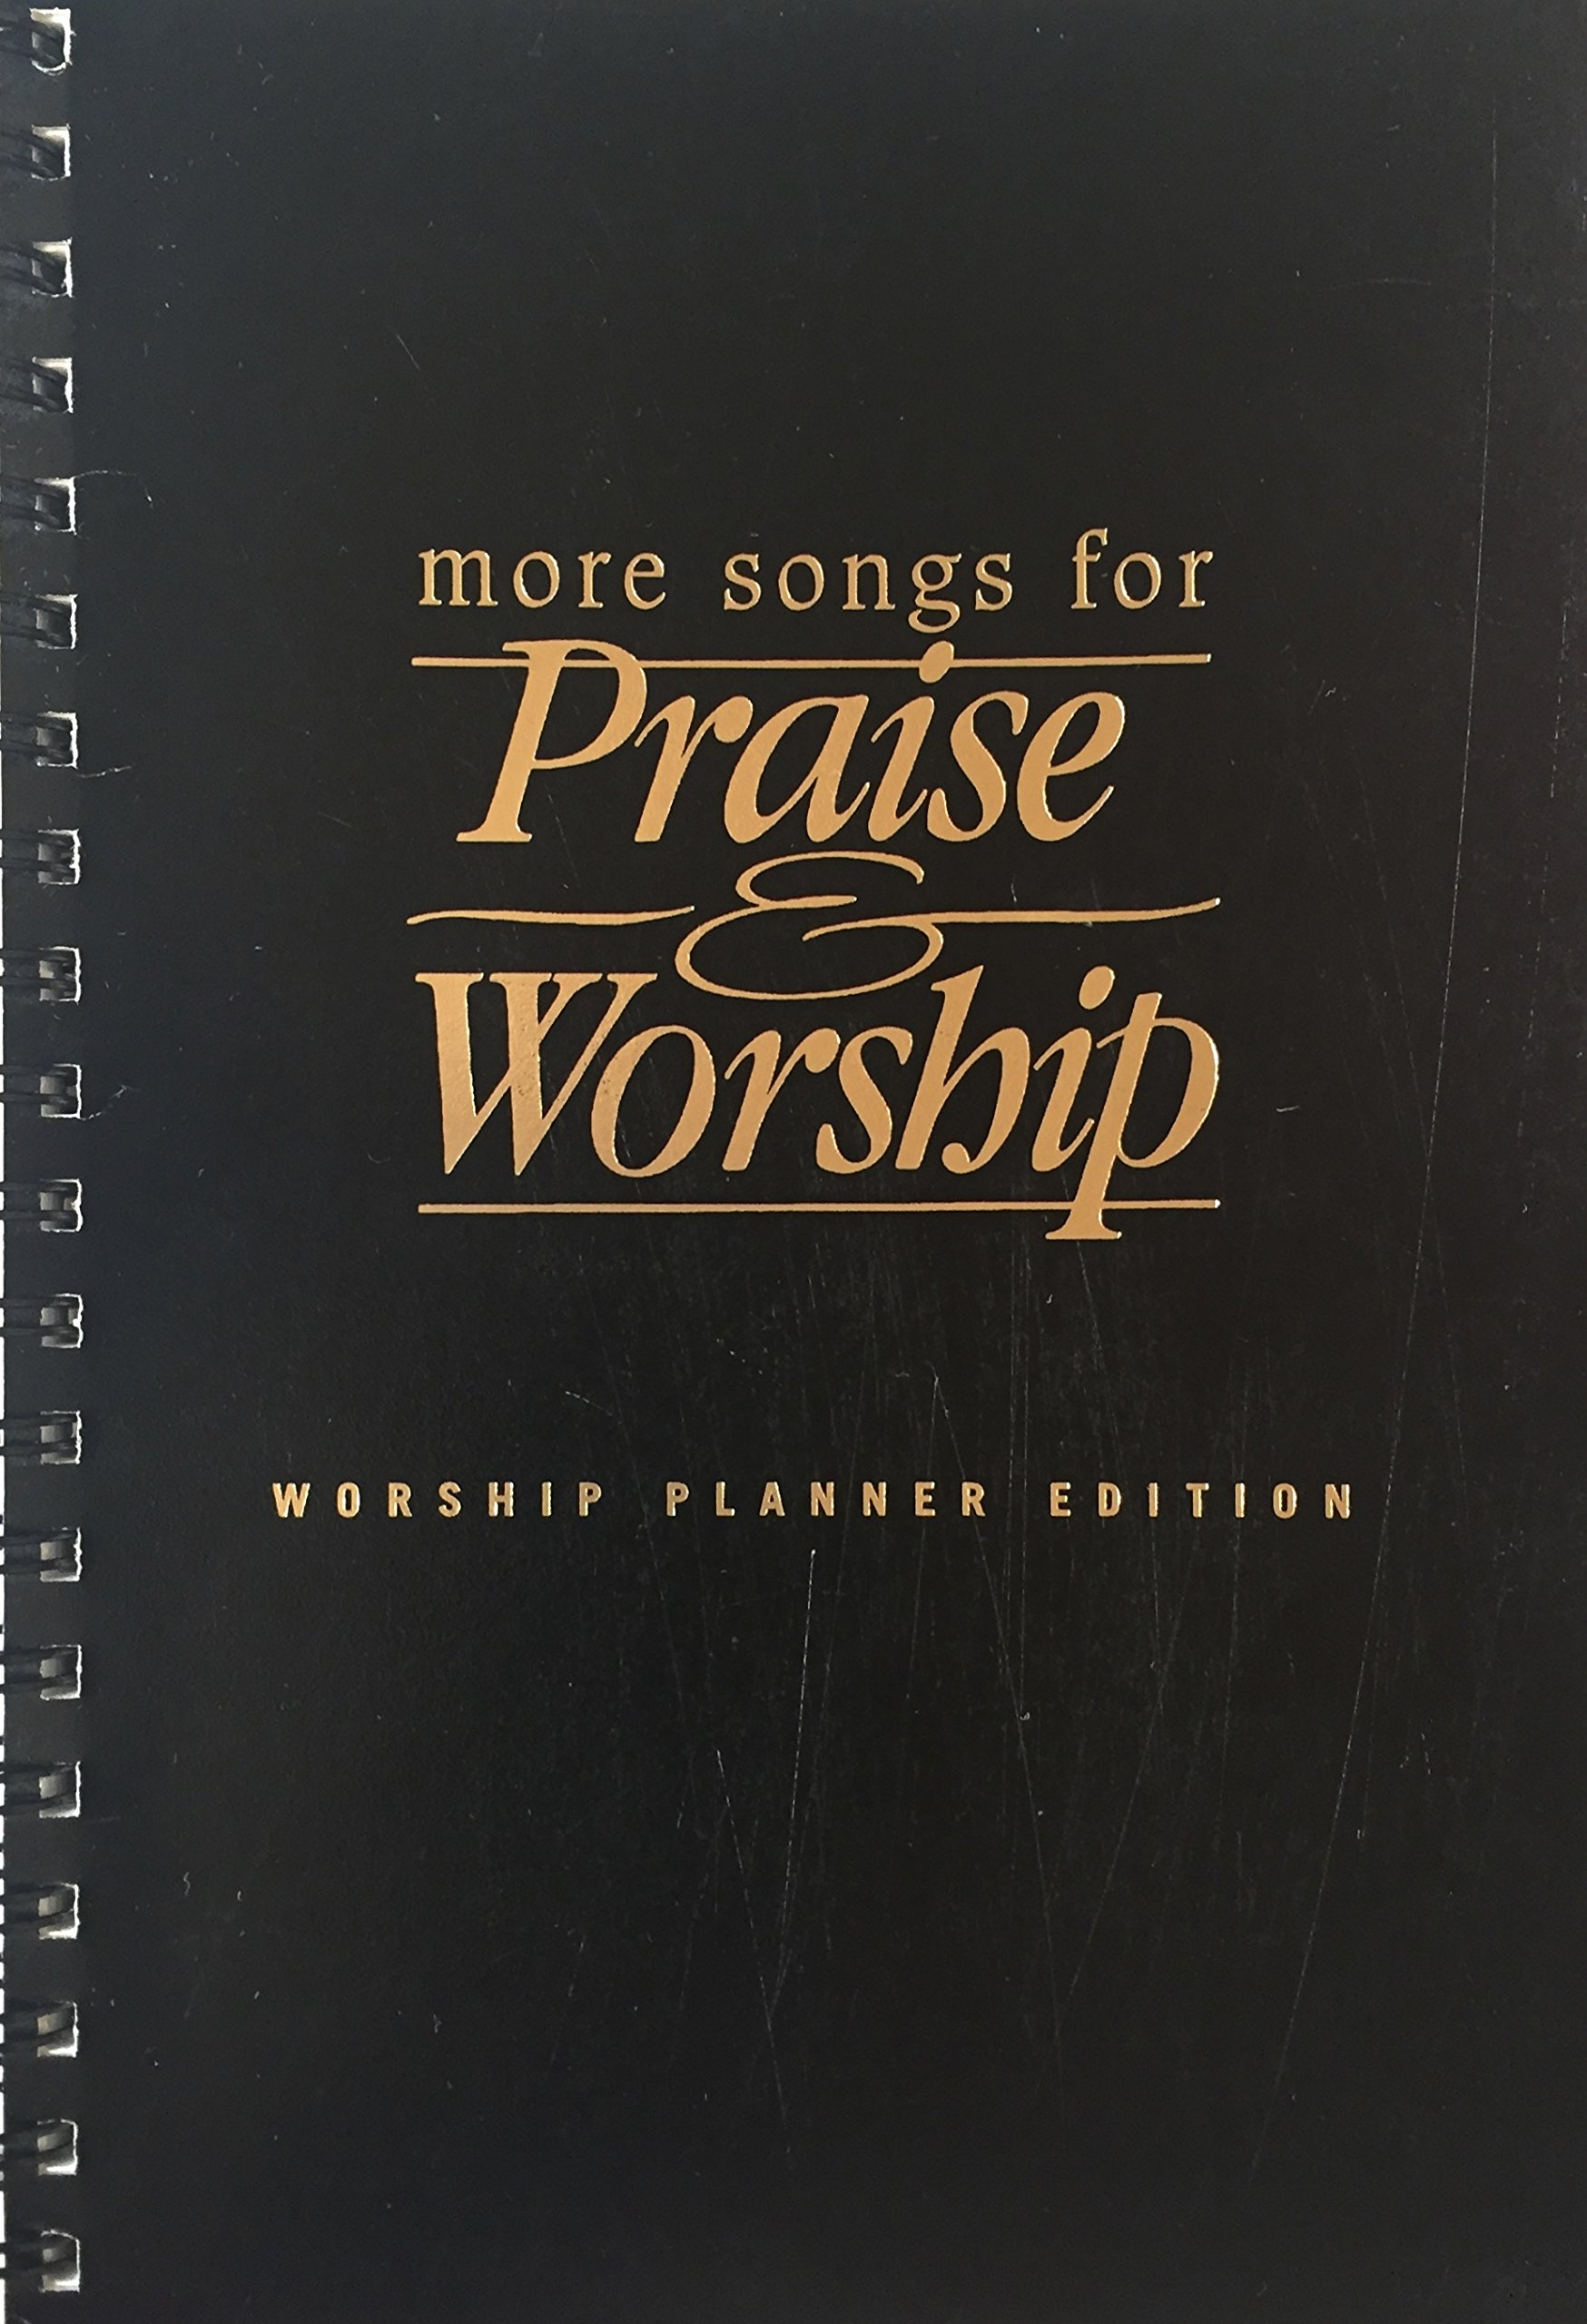 More Songs for Praise & Worship [with Full Mix Recording